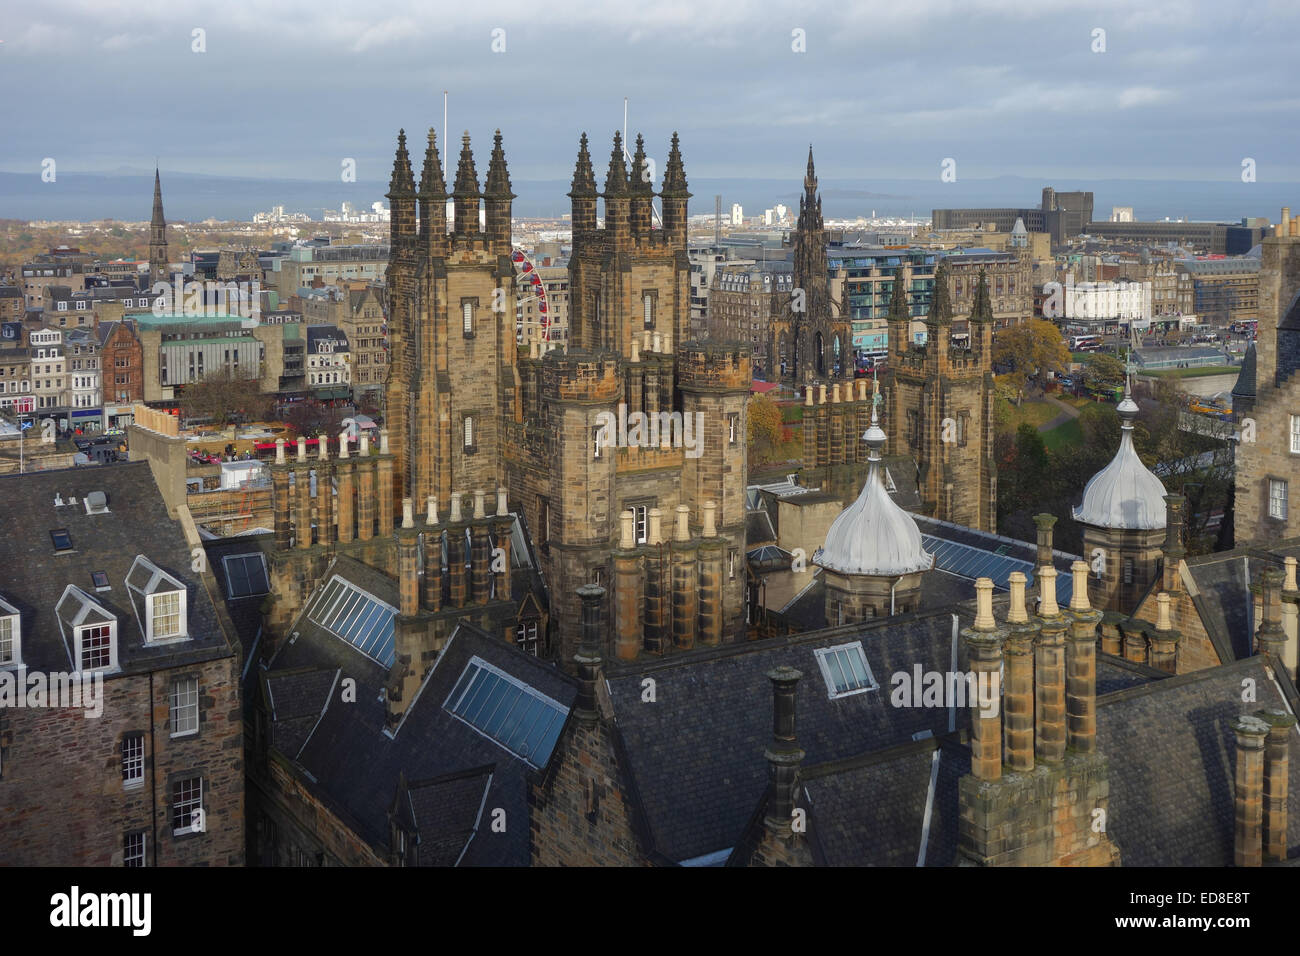 Looking from the roof of Camera Obscura towards the General Assembly Hall of the Church of Scotland, Edinburgh, - Stock Image